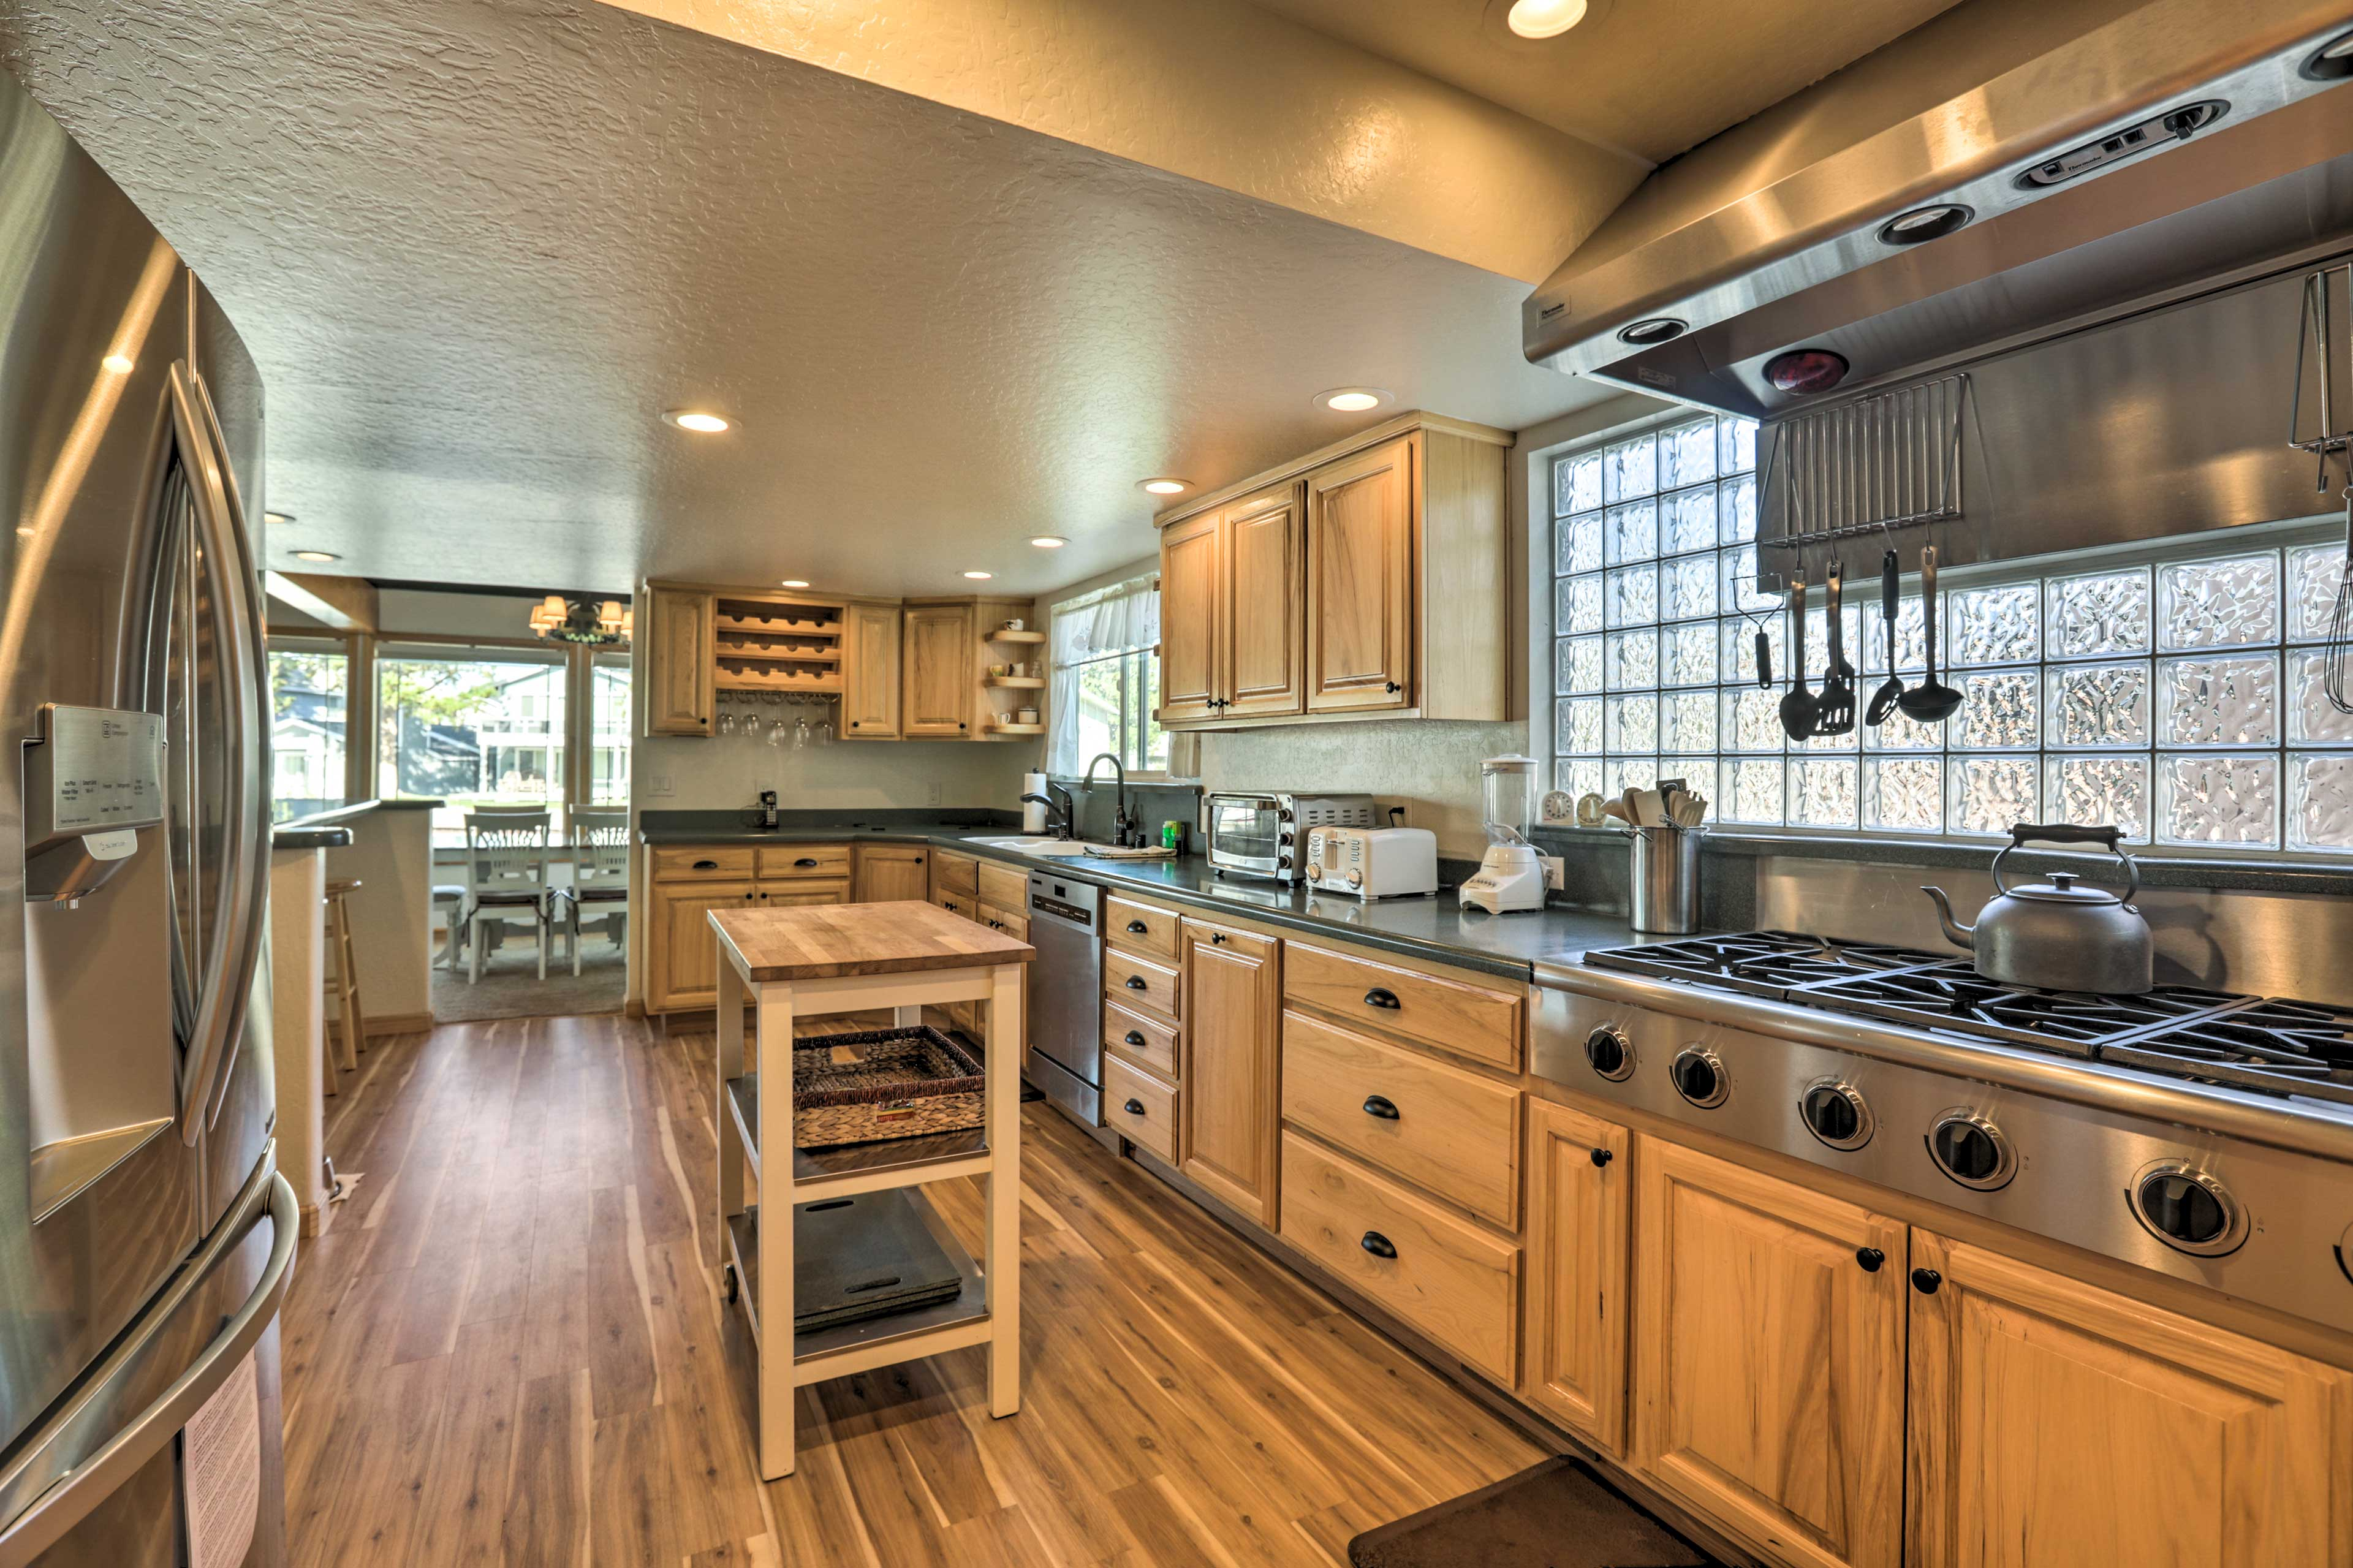 The fully equipped kitchen features top-of-the-line stainless steel appliances.